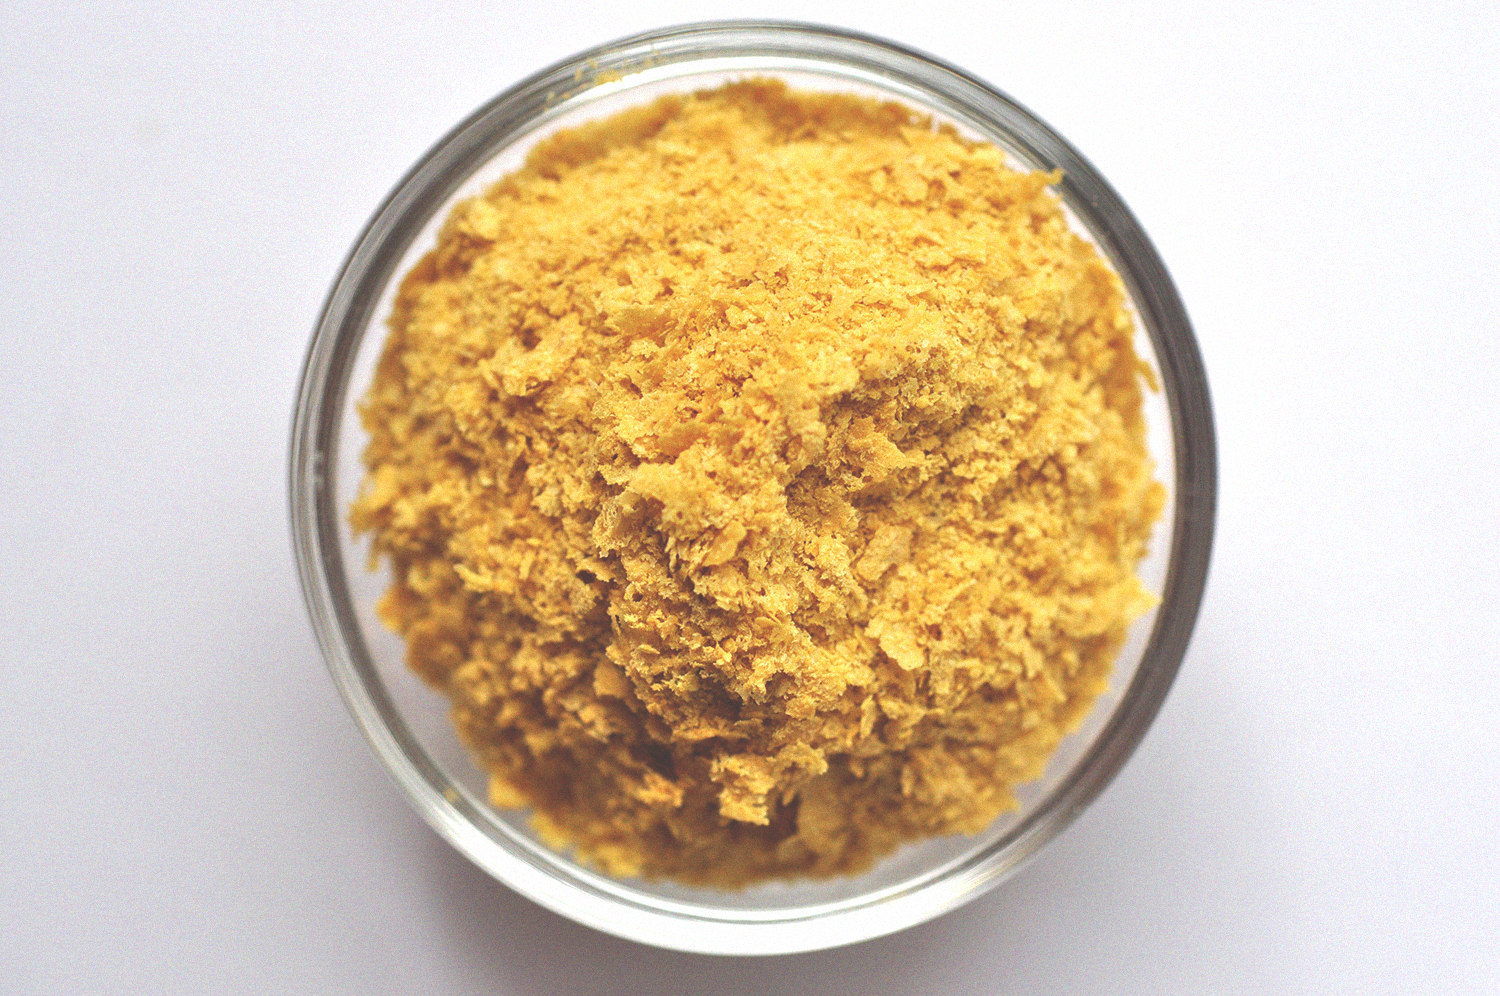 Get to know these cheesy alternative known as nutritional yeast.